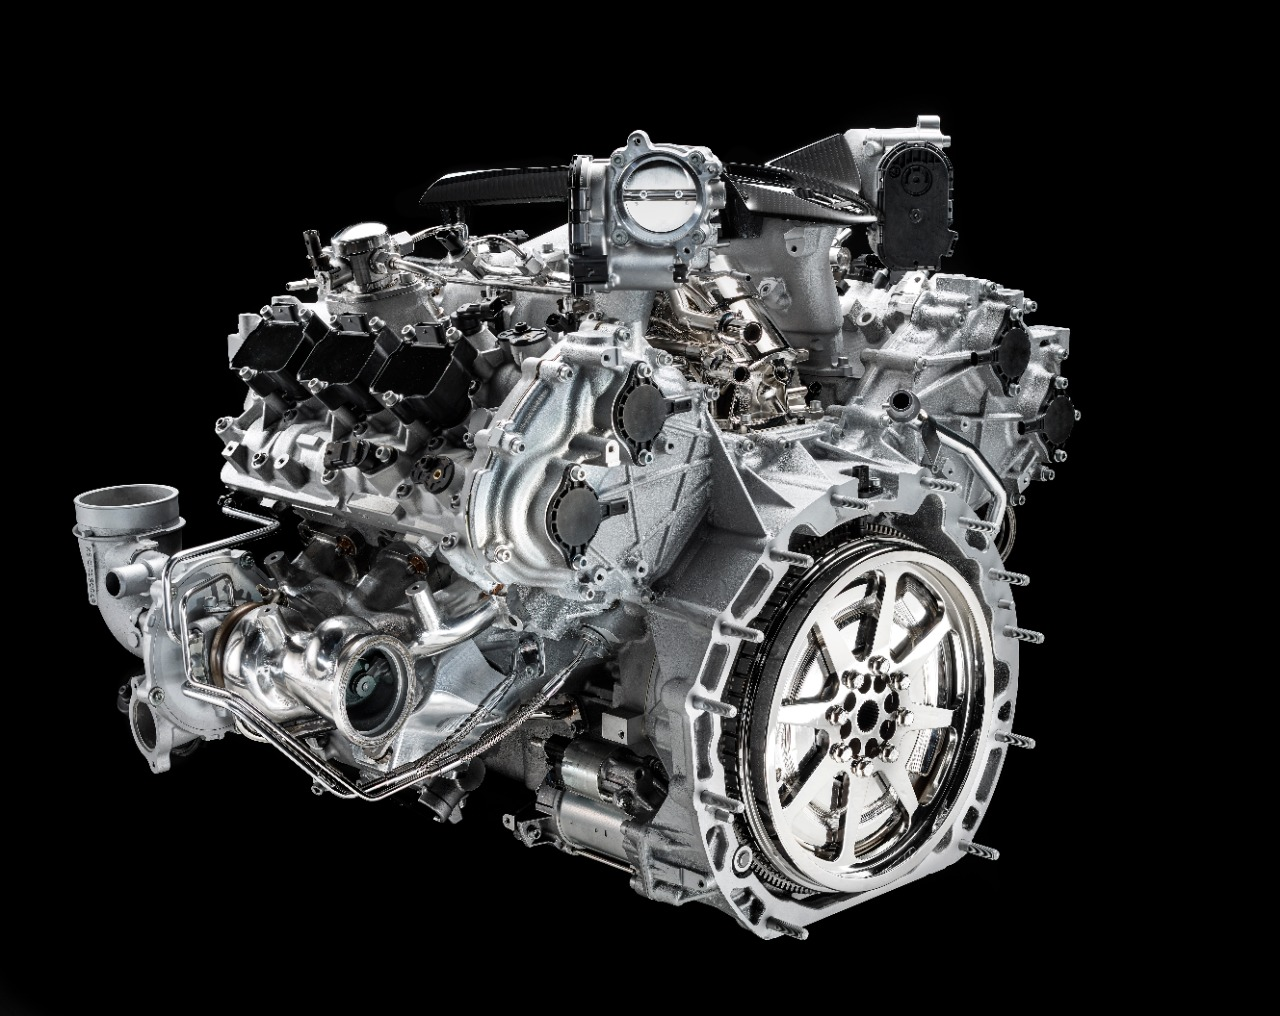 630 hp engine in its new MC20